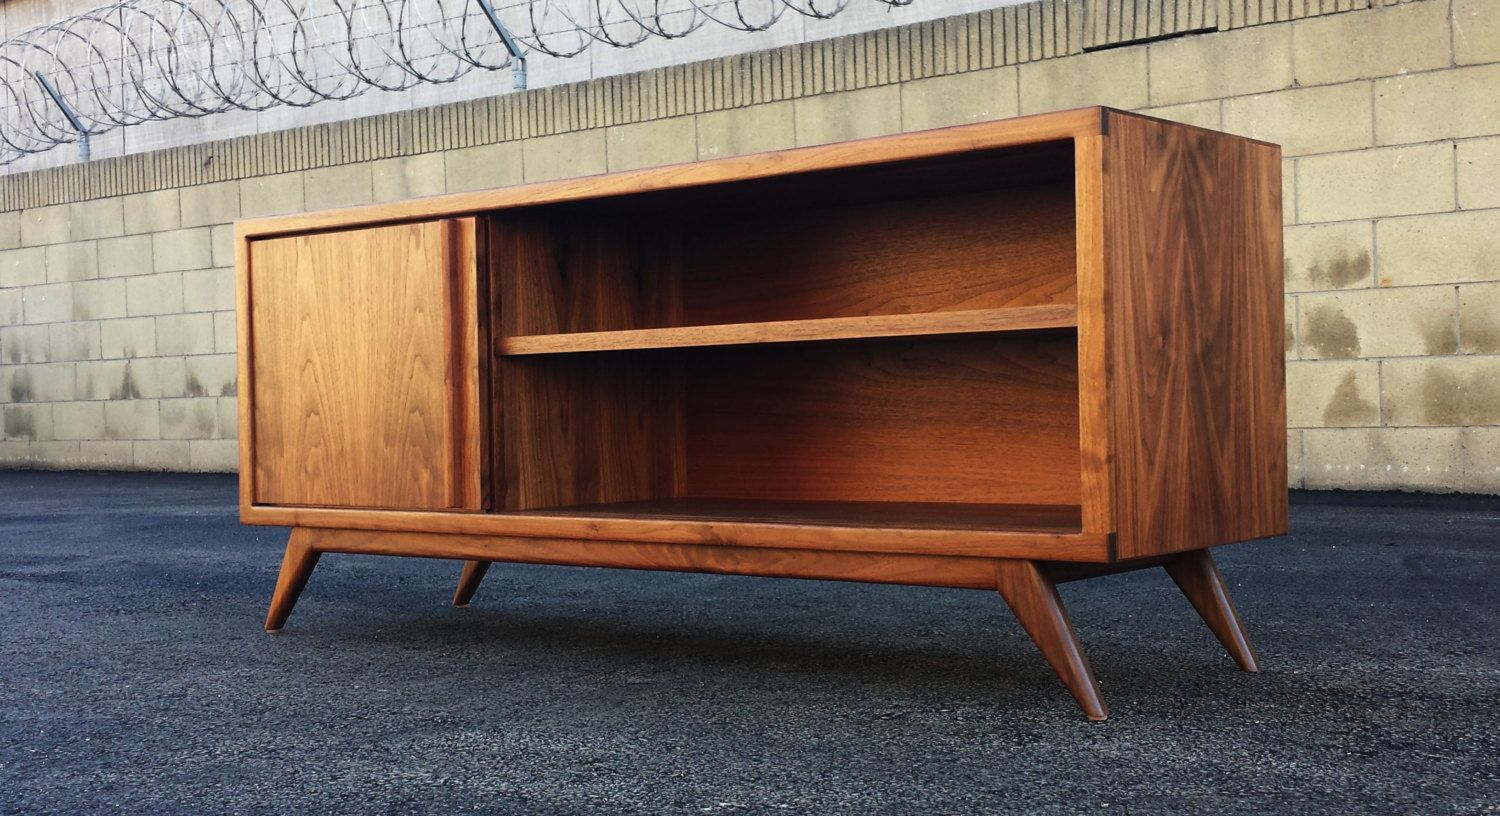 Cute Mid Century Modern Credenza For Classic Home Furniture Sophisticated Mid Cen Classic Home Furniture Mid Century Modern Credenza Mid Century Modern Buffet